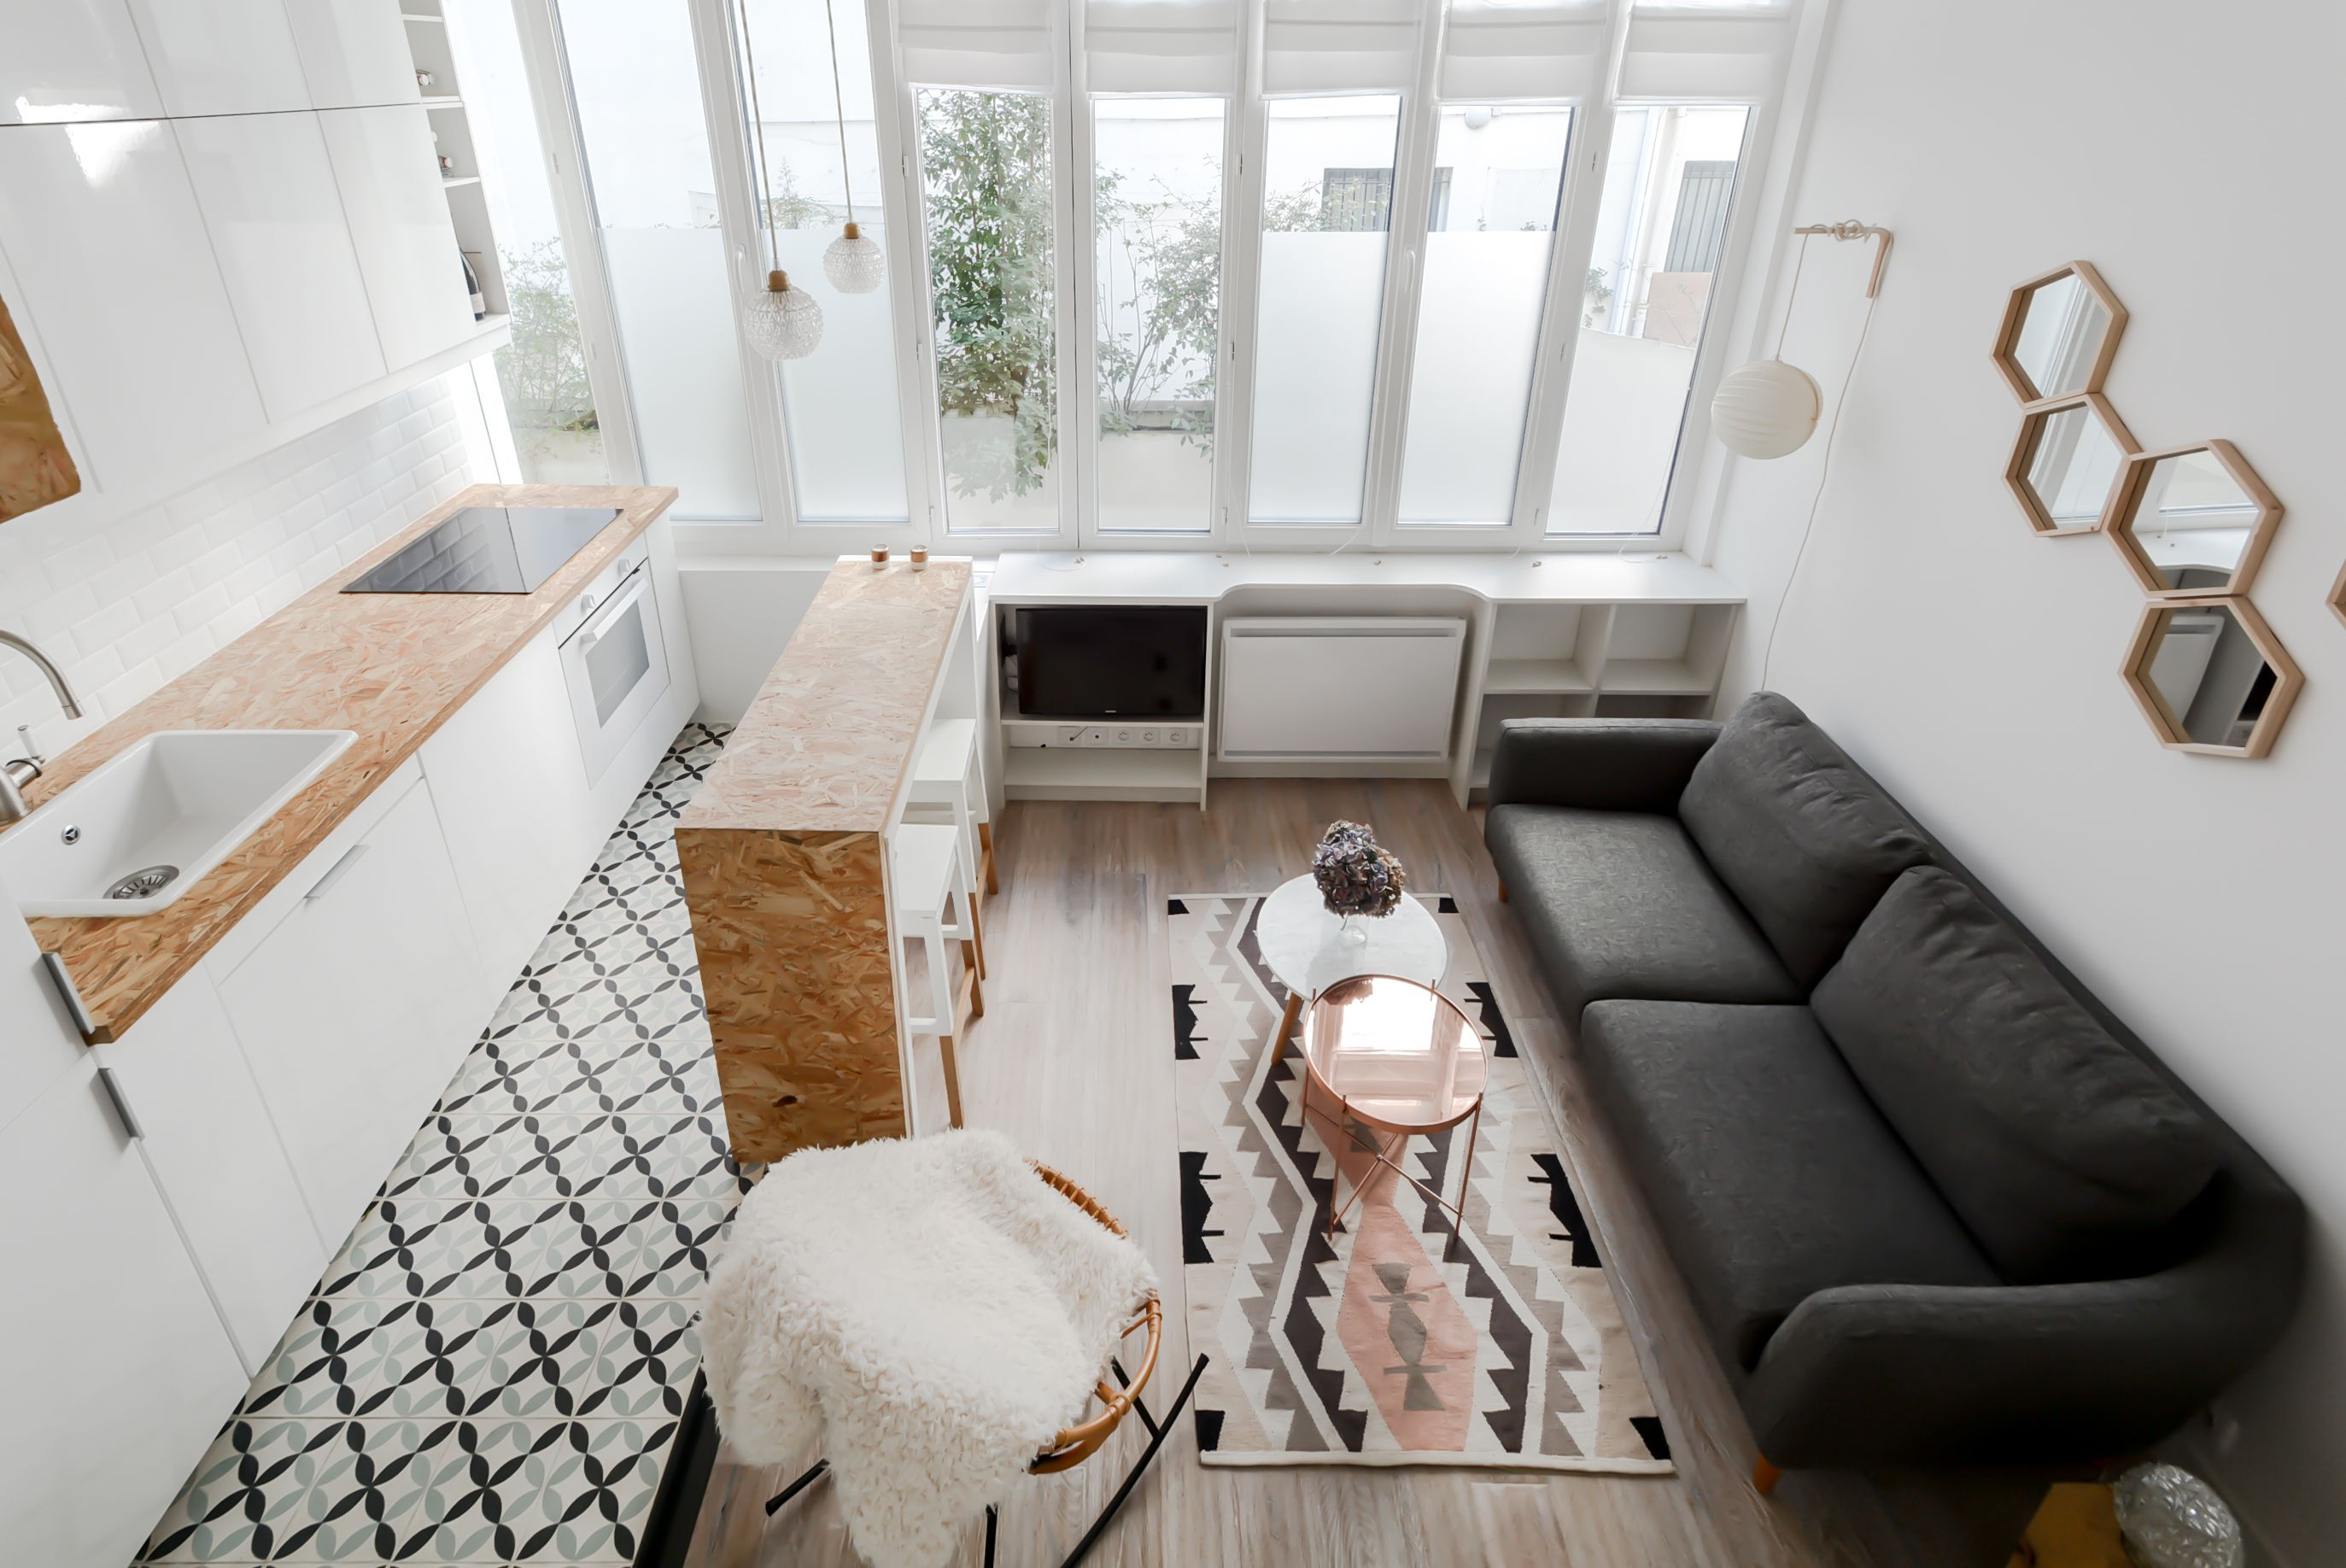 Small apartment loft in paris 22 square meters or how to make a lot with a tiny space loft small tiny space